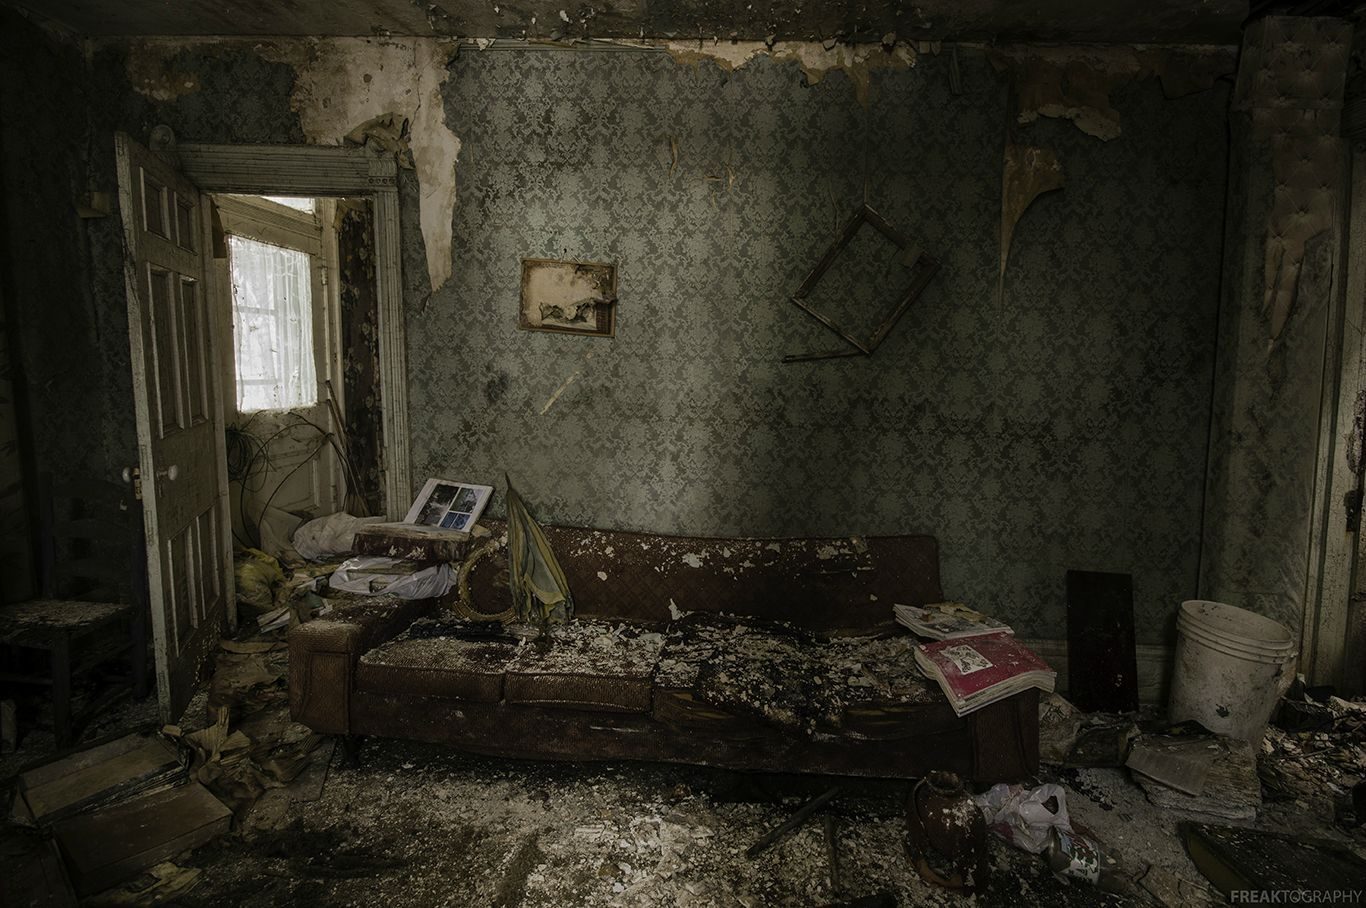 Trashed living room inside an abandoned house (1366X908 ...